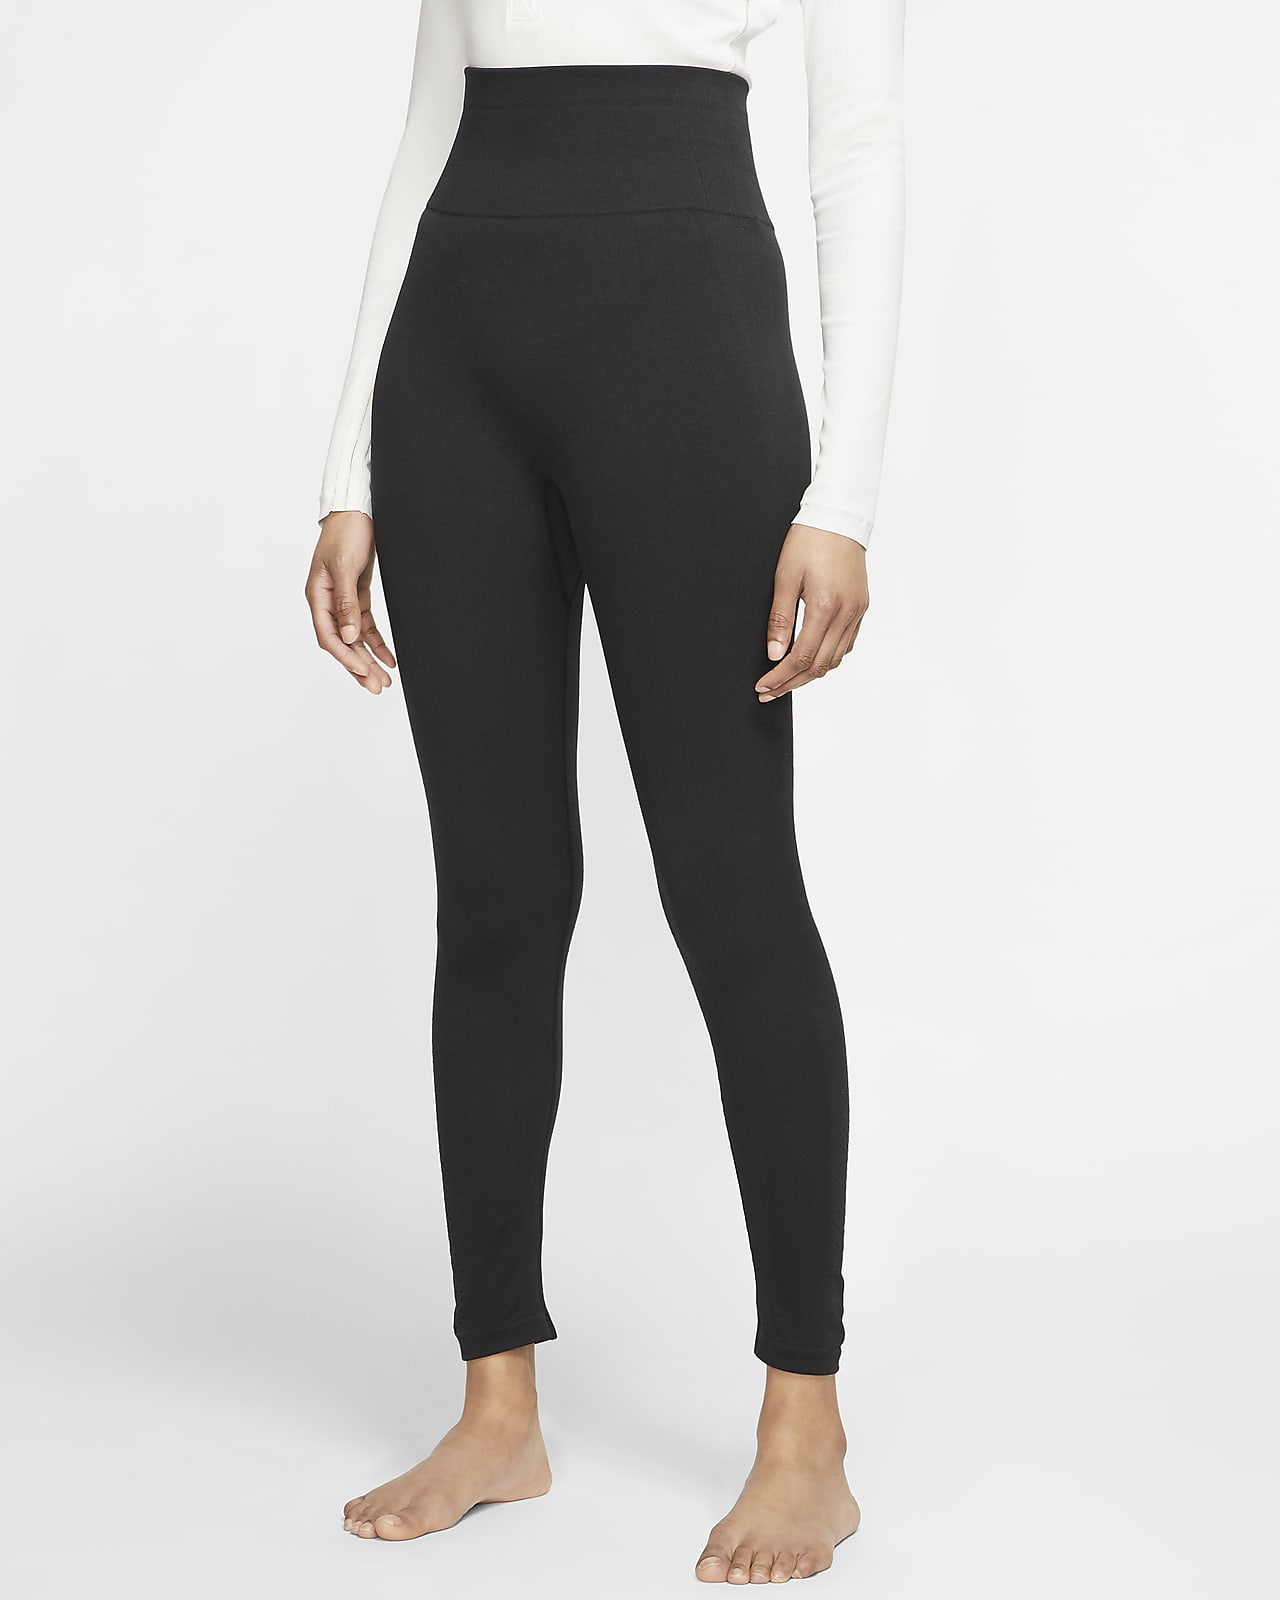 Nike Yoga Women's Seamless 7/8 Leggings